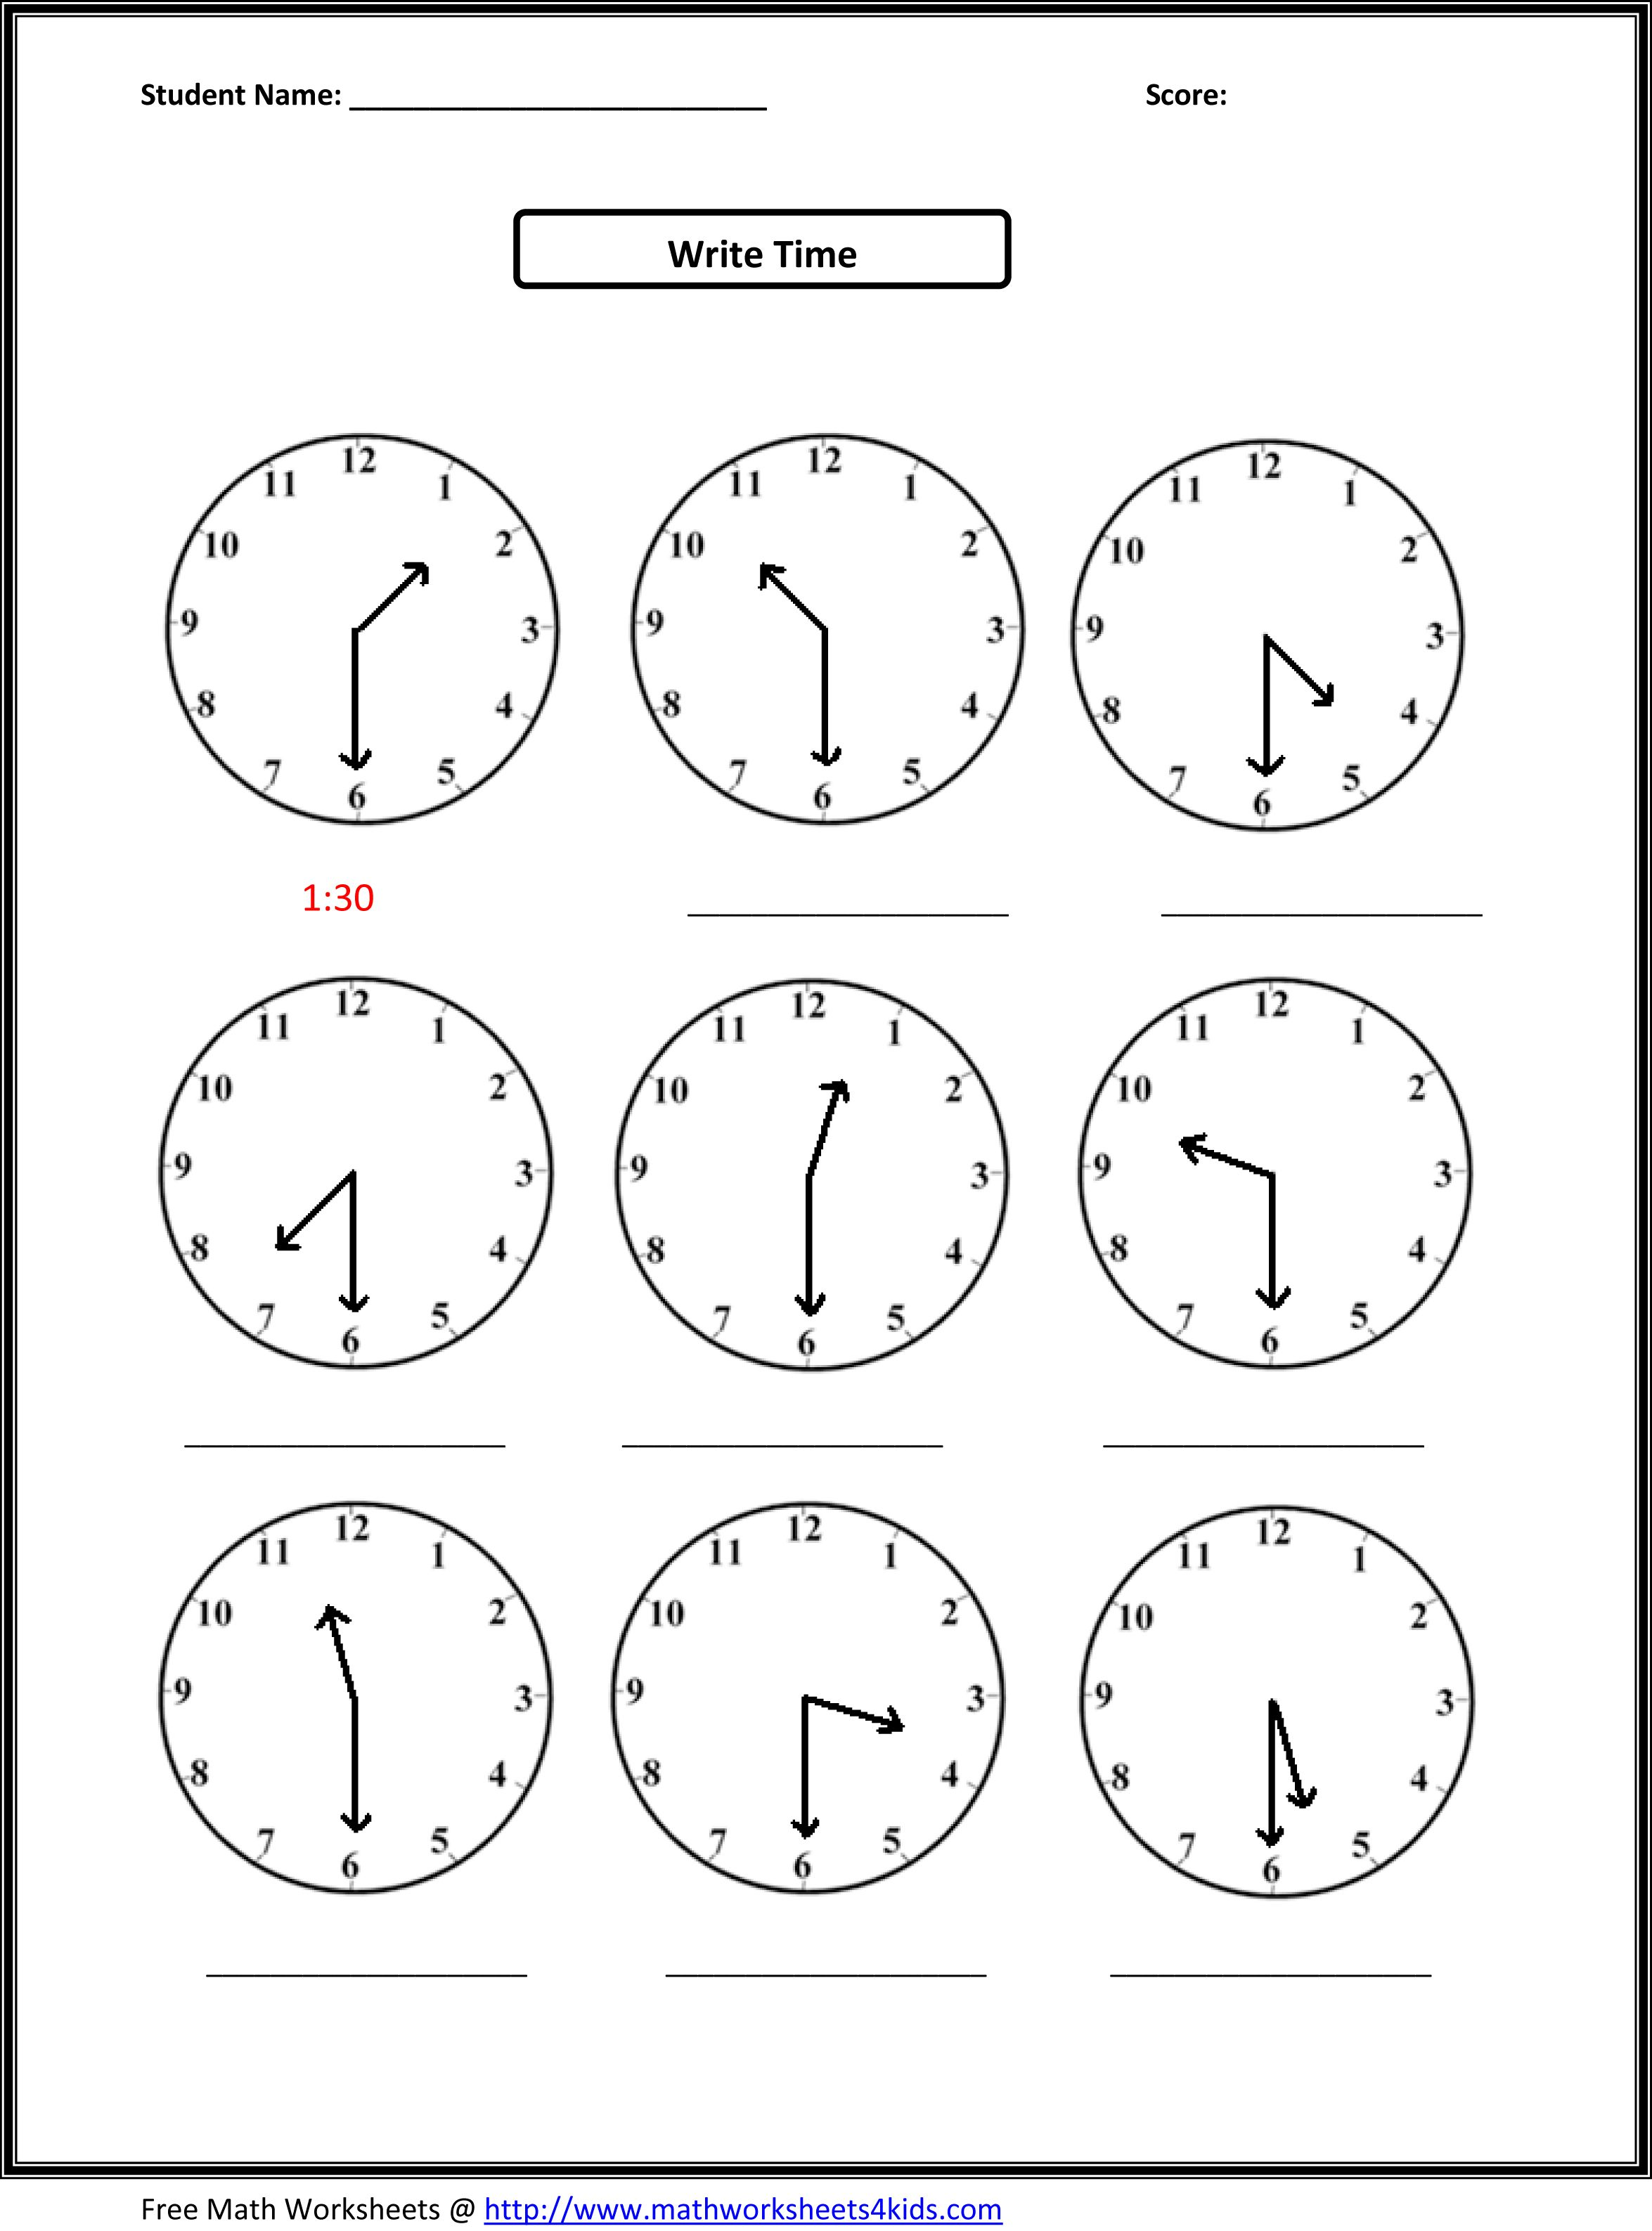 Weirdmailus  Seductive Worksheet On Time For Grade   Reocurent With Interesting Free Printable Telling Time Worksheets Nd Grade  Reocurent With Comely Th Grade Geography Worksheets Also Roots Worksheet In Addition Cutting Shapes Worksheets And Federal Itemized Deduction Worksheet As Well As Printable Th Grade Worksheets Additionally Solve And Graph The Inequalities Worksheet From Reocurentcom With Weirdmailus  Interesting Worksheet On Time For Grade   Reocurent With Comely Free Printable Telling Time Worksheets Nd Grade  Reocurent And Seductive Th Grade Geography Worksheets Also Roots Worksheet In Addition Cutting Shapes Worksheets From Reocurentcom